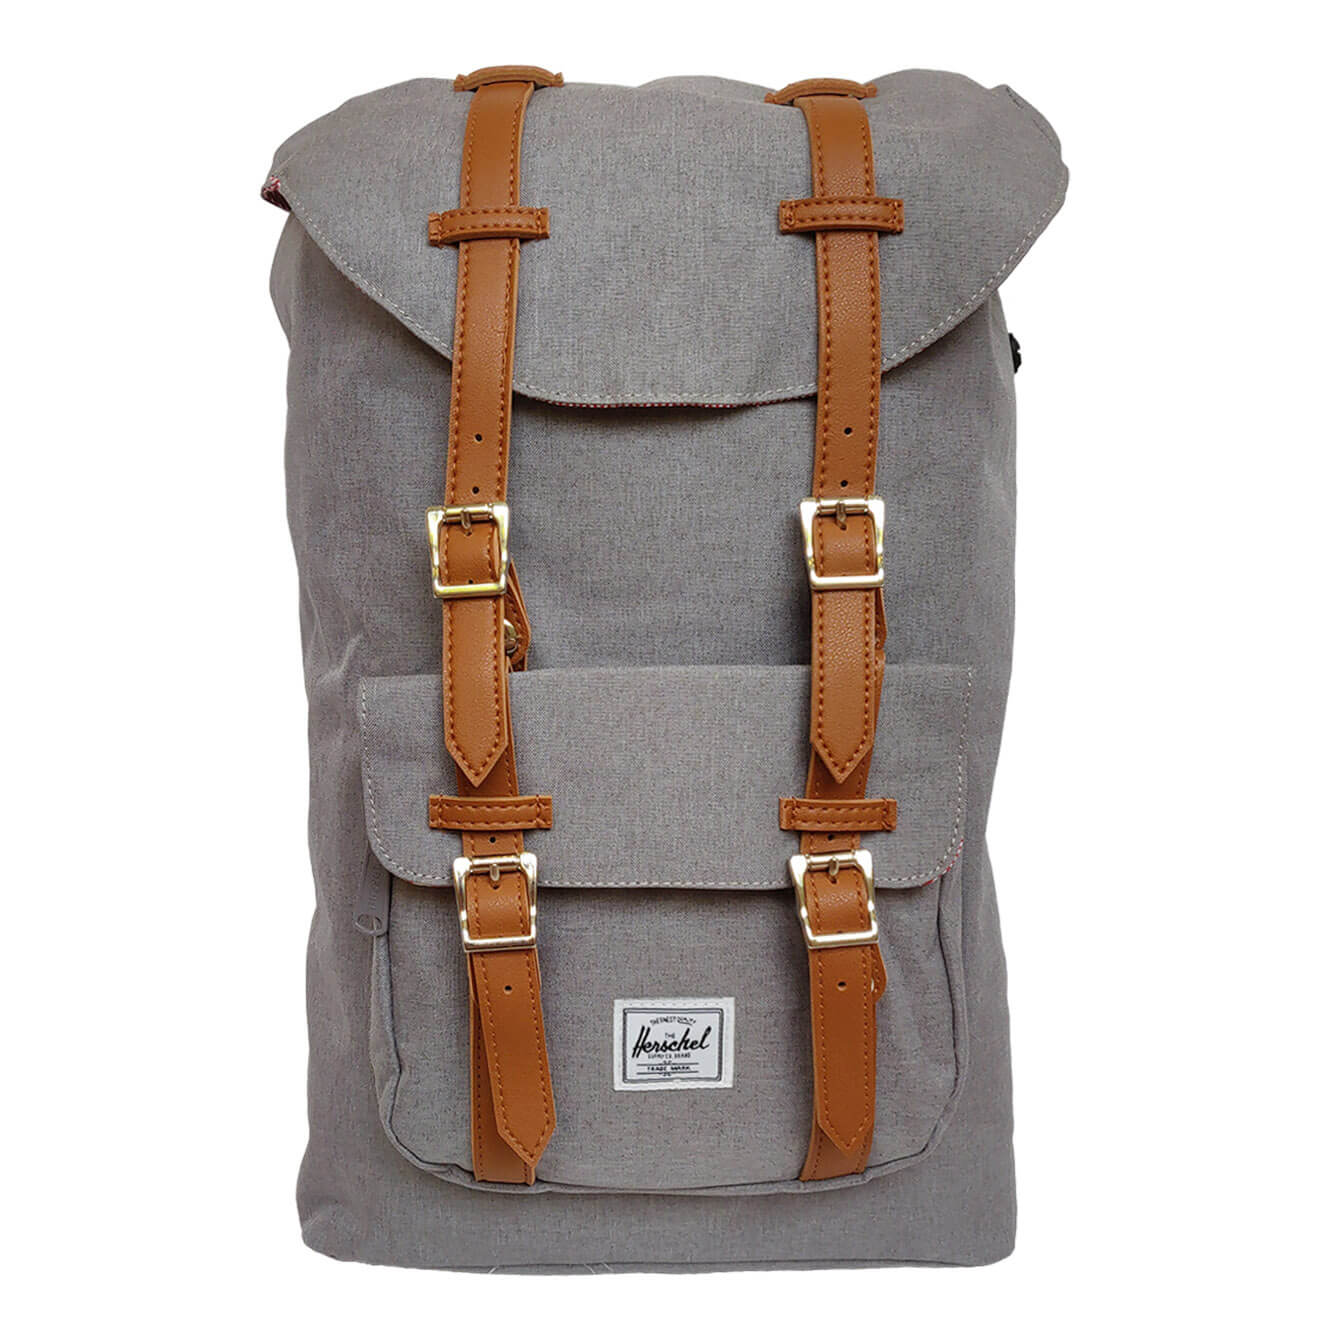 14fafdd27c4 Herschel Little America Grey   Tan - Retro Bags